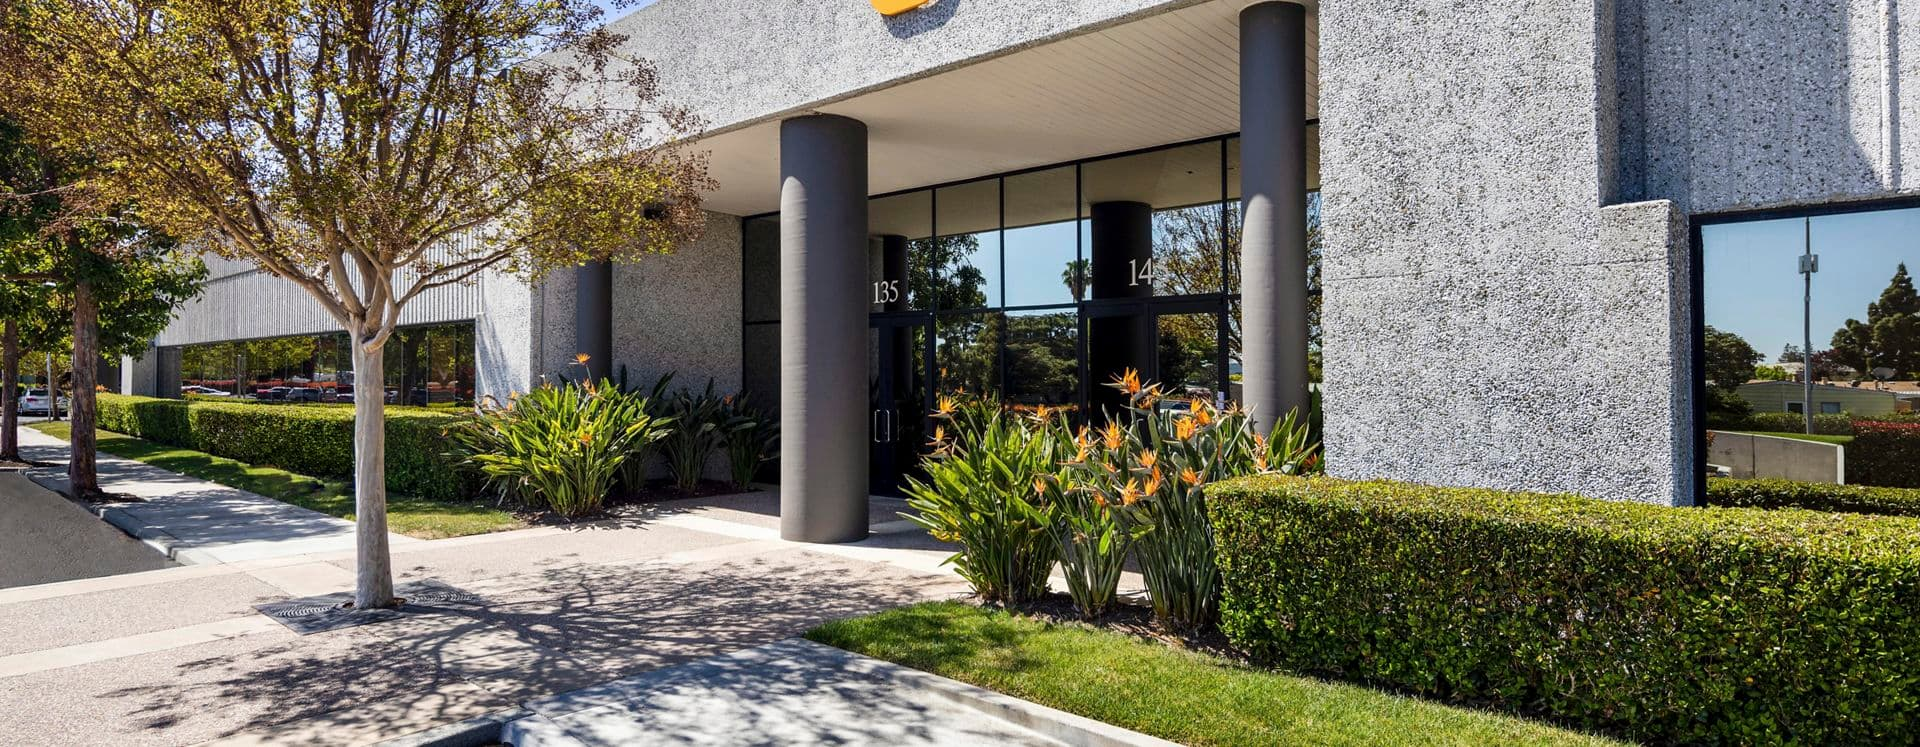 Exterior building photography of 125-155 Nicholson Lane in First Point, in San Jose, California.